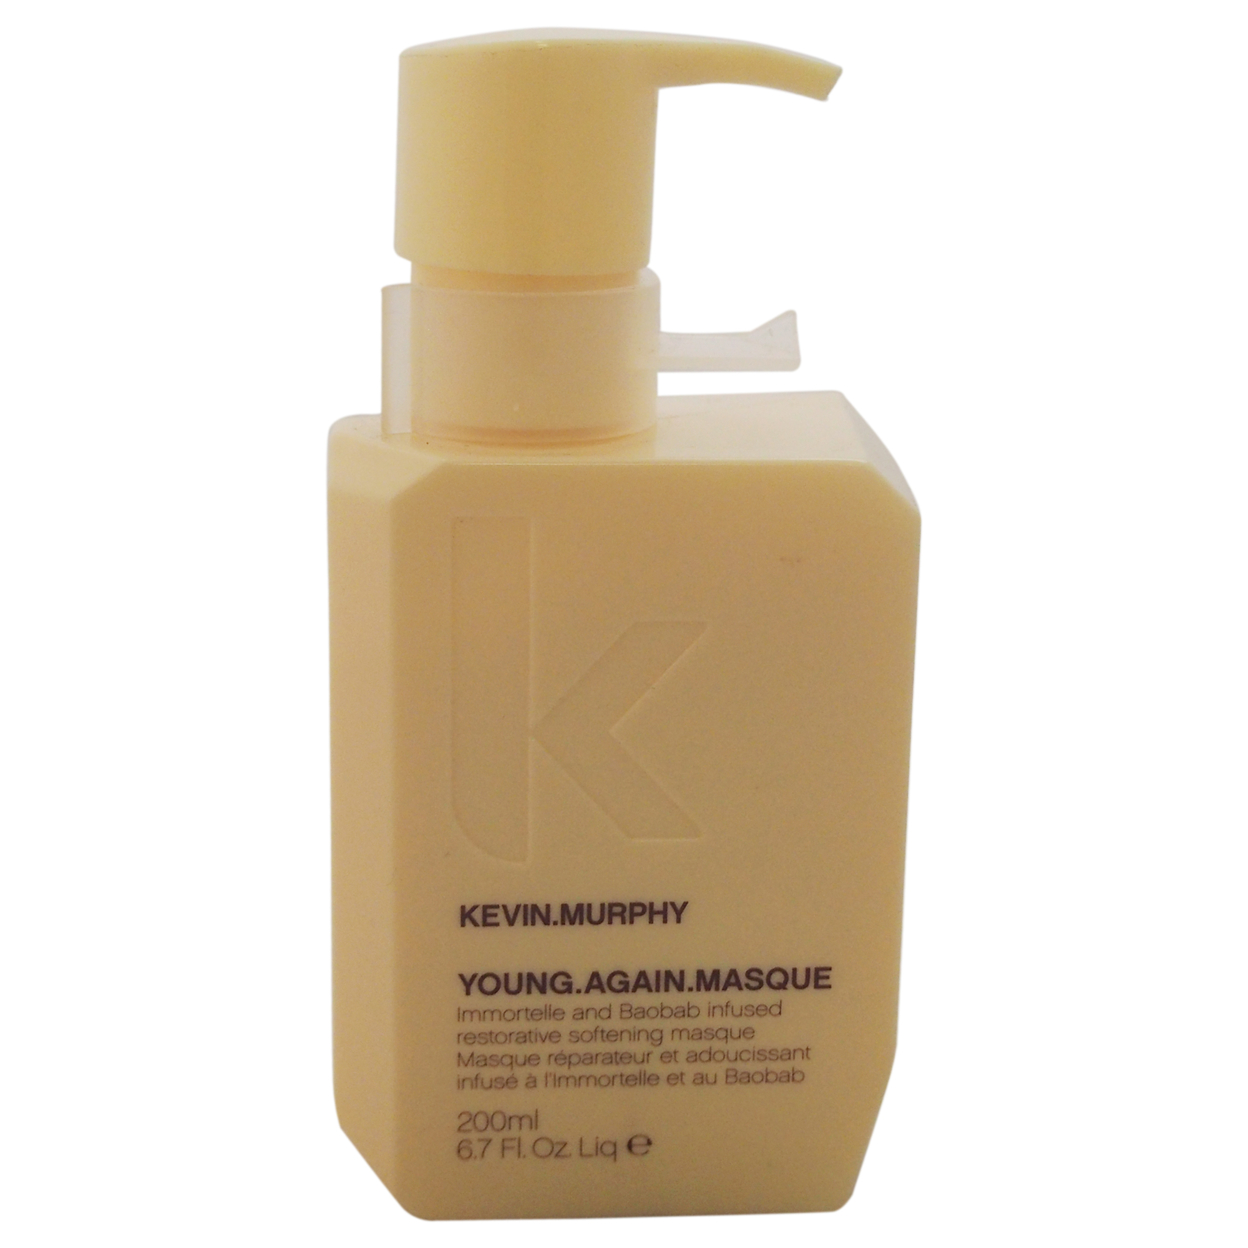 Young.Again.Masque by Kevin Murphy for Unisex - 6.7 oz Masque murphy kevin s quinoa improvement and sustainable production isbn 9781118628102